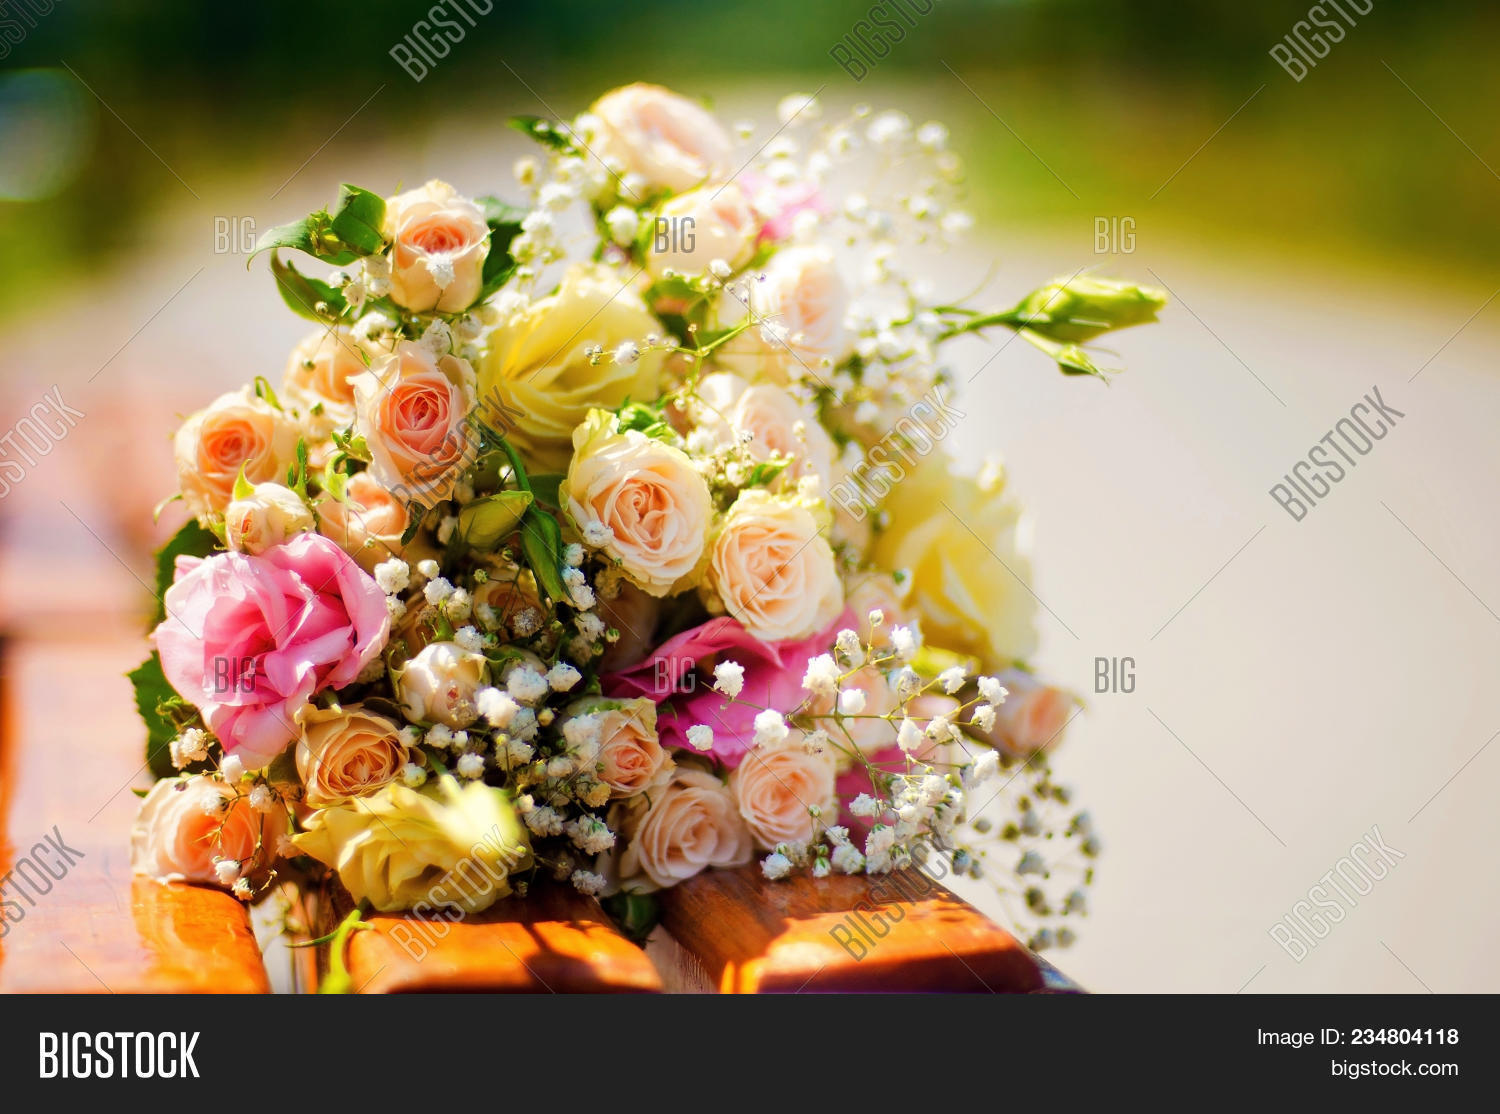 Wedding bouquet pink roses and lisianthus delicate pink gentle and izmirmasajfo